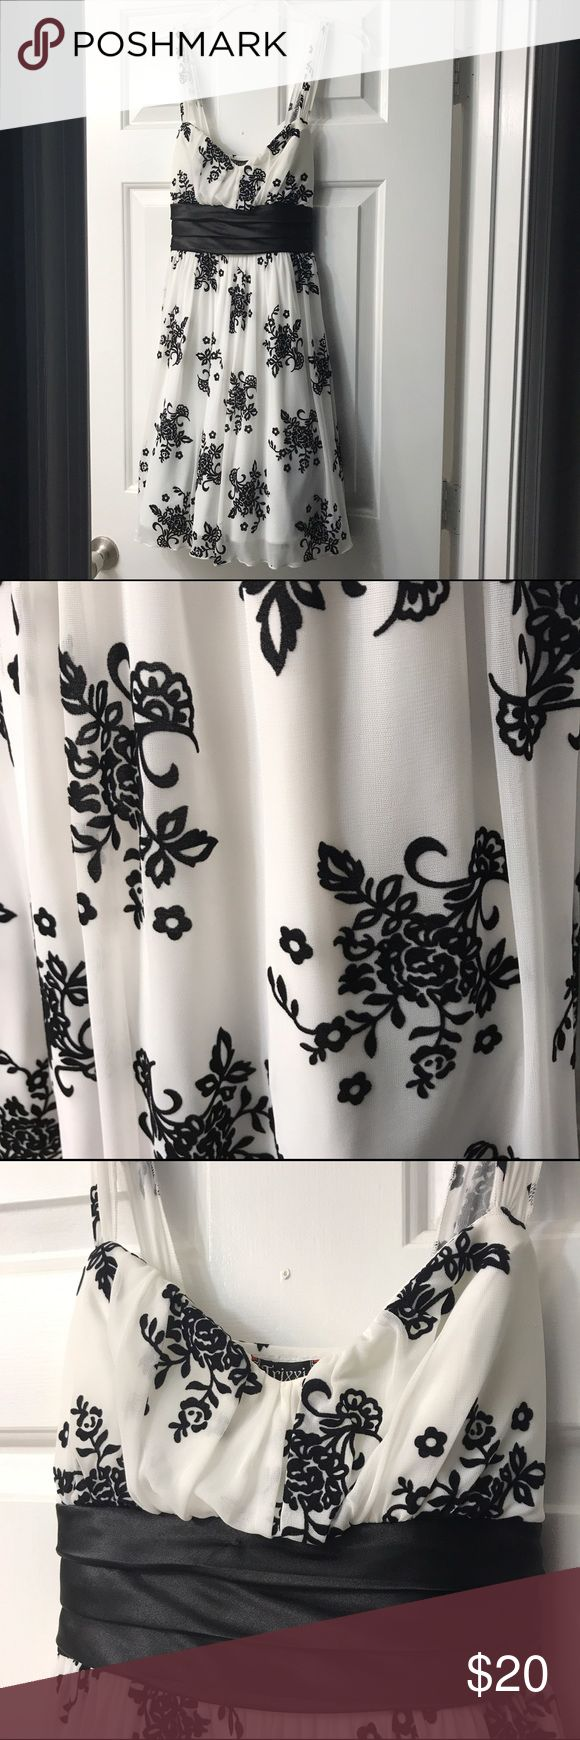 Formal Dress Black and White Formal Dress- great for so many occasions such as school formals/dances, baby showers, bridal showers, weddings and more! Very cute and comfortable dress-only worn once, great condition! Trixxi Dresses